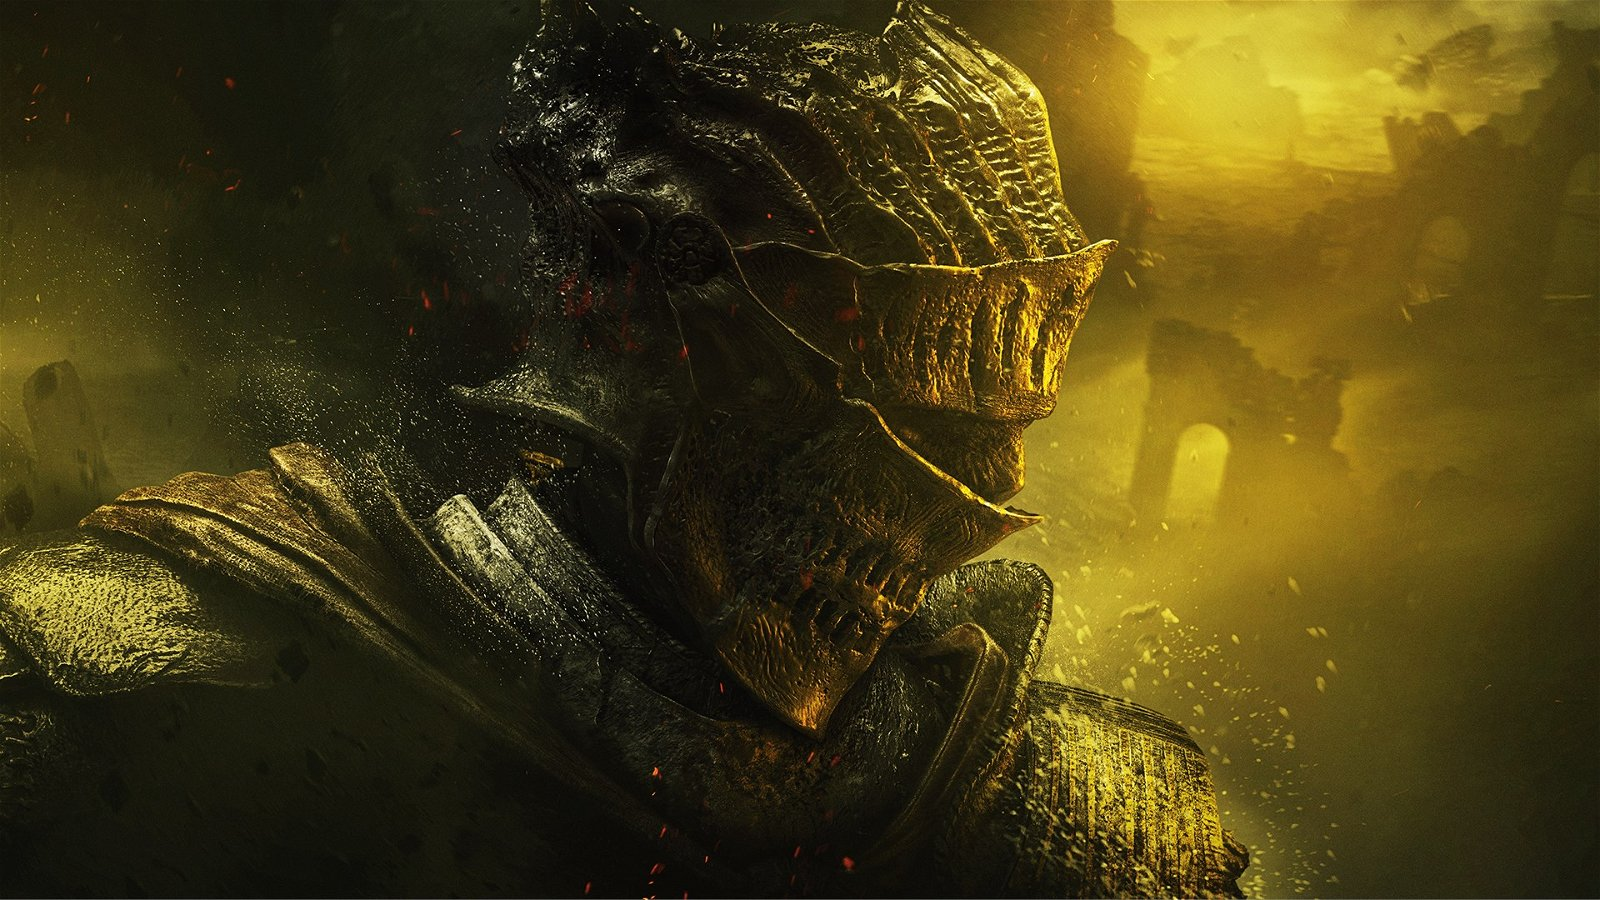 Dark Souls 3 Gets FPS Boost on Xbox Series X|S, Now Runs at 60fps